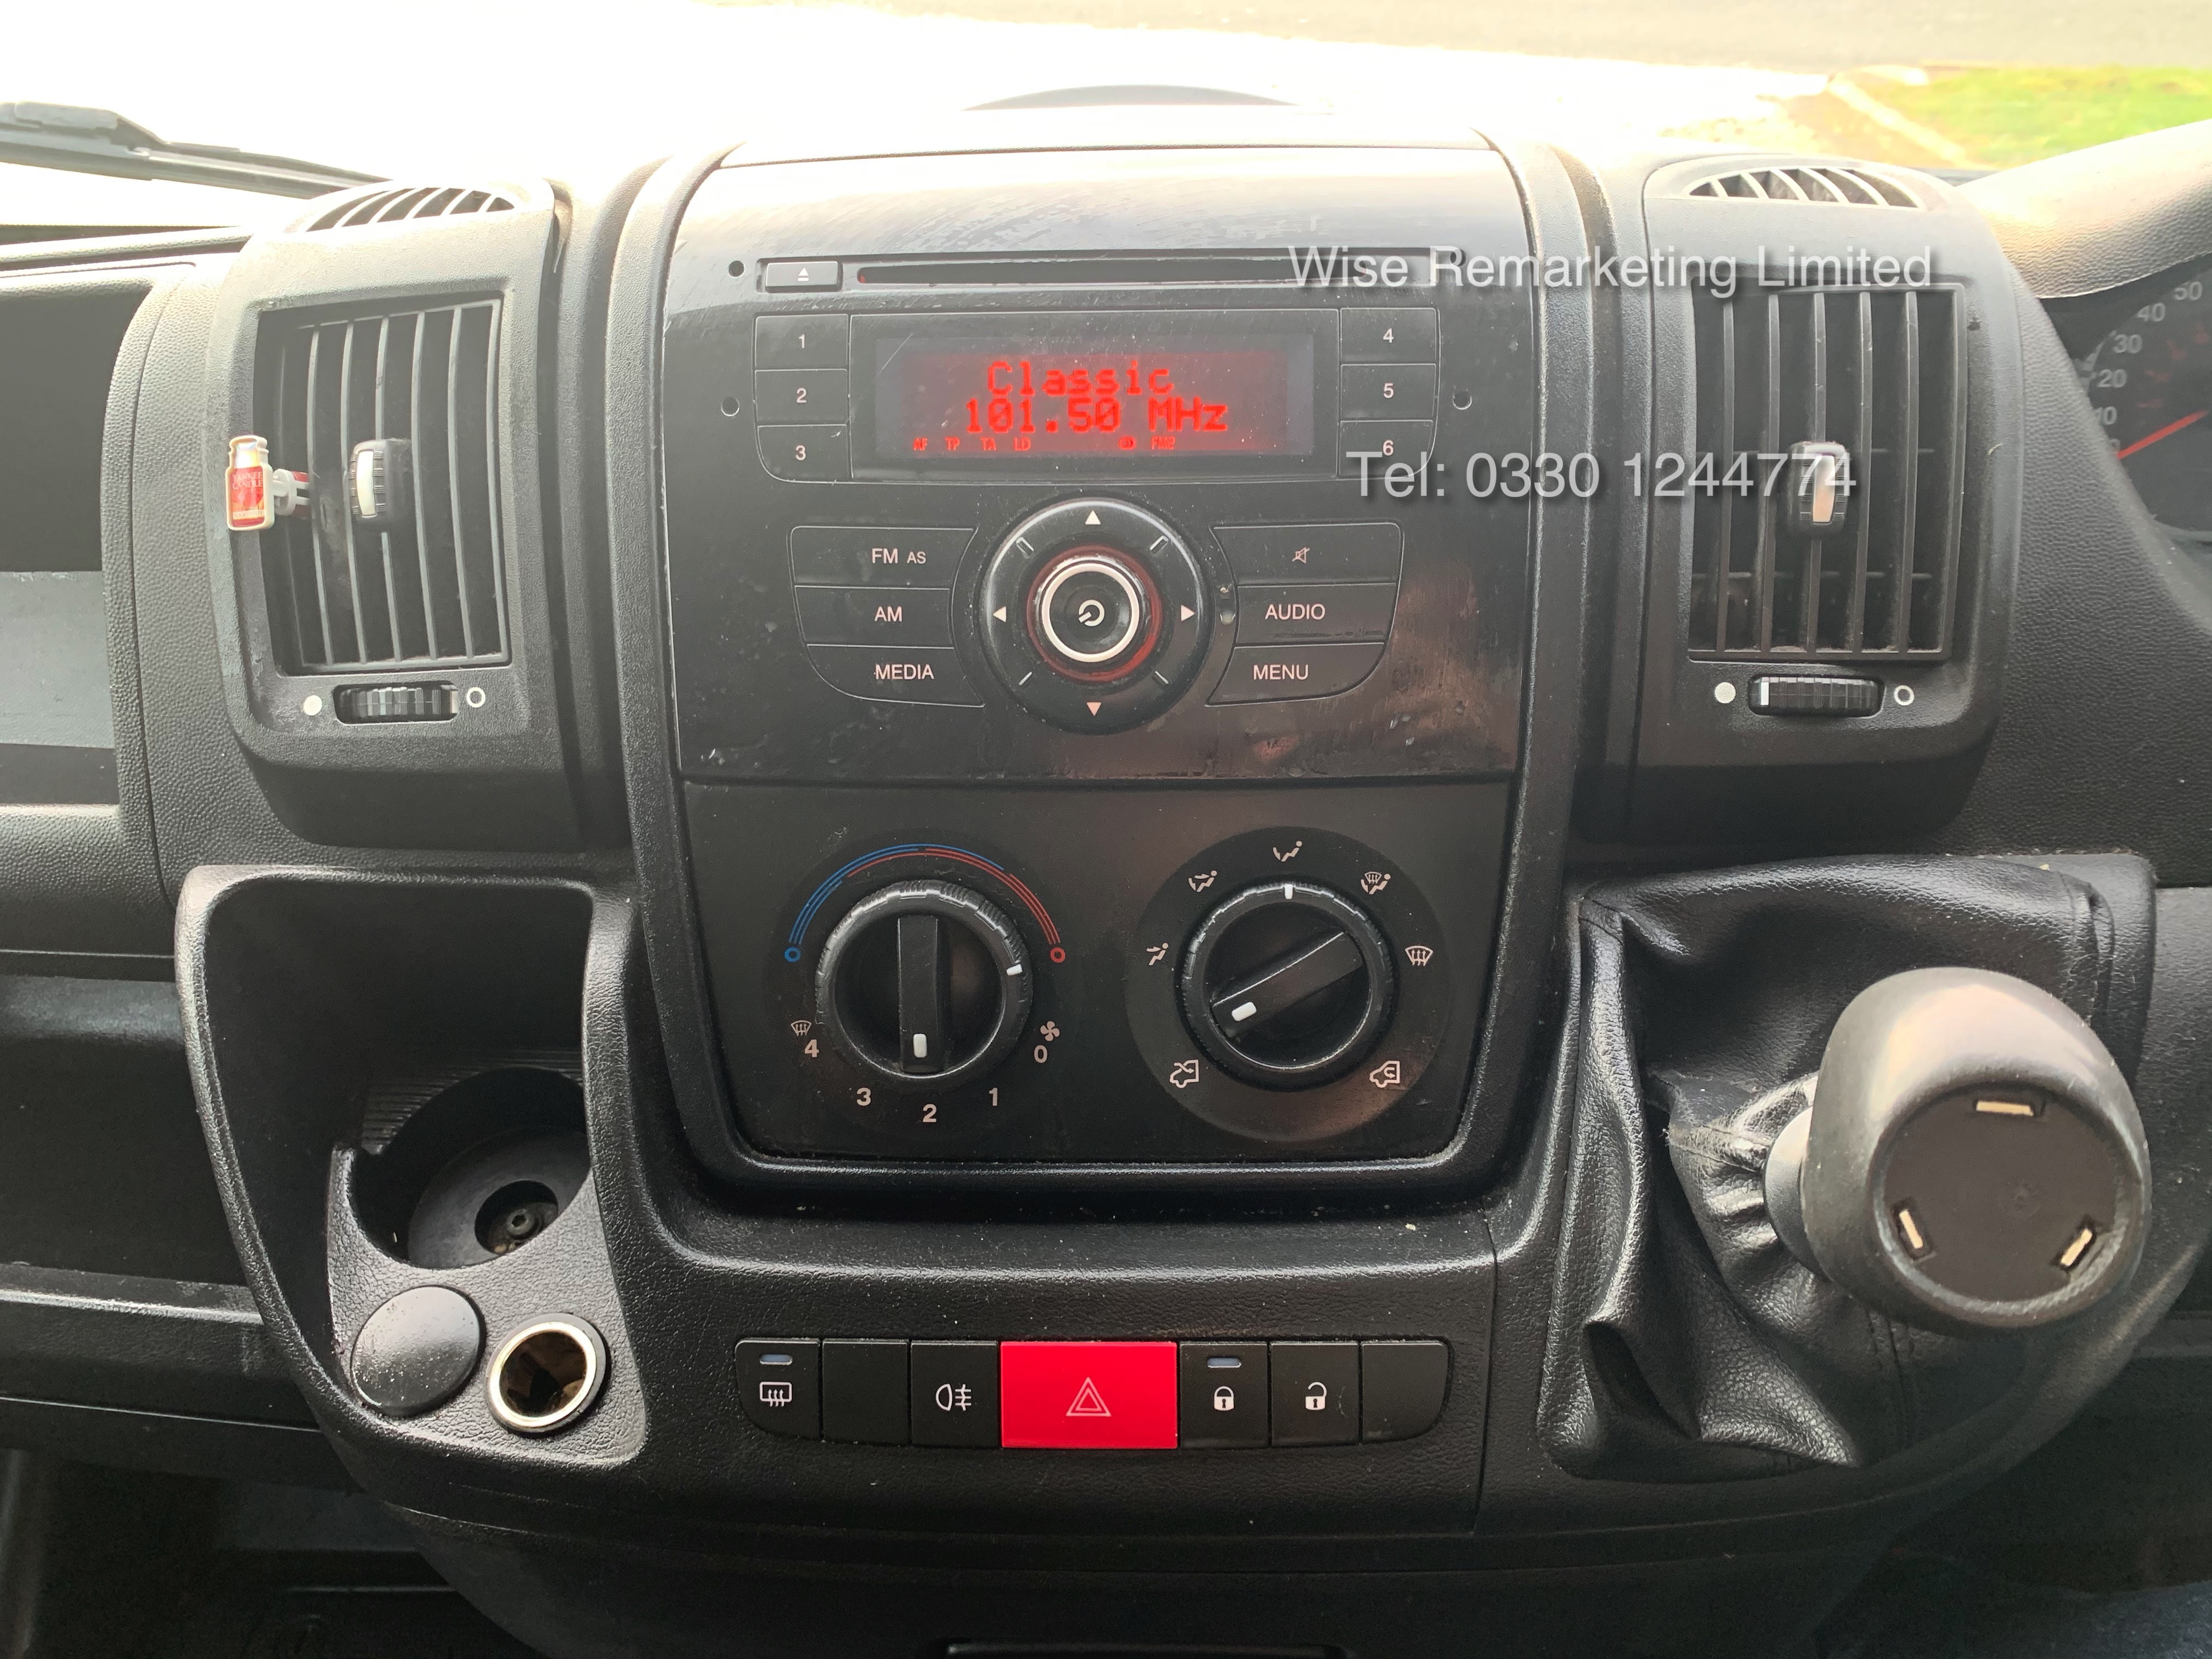 Peugeot Boxer 335 2.2 HDi (L3H2) 2014 Model - 1 Keeper From New - Long Wheel Base - Image 14 of 17